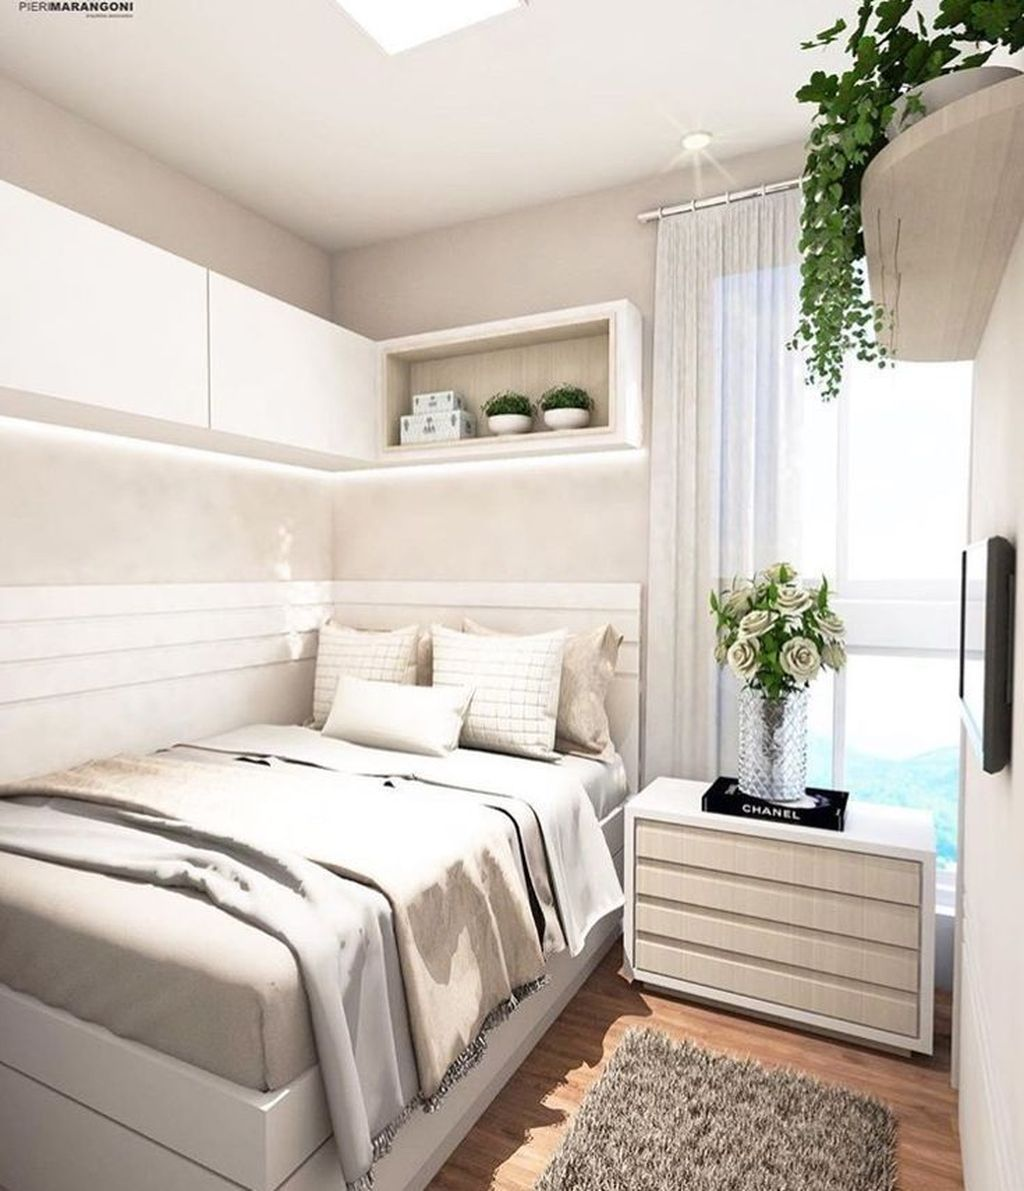 33 Admirable Small Bedroom Decor Ideas You Never Seen Before -   - #admirable #bedroom #bedroomdecorideas #before #decor #ideas #never #rustichomedecor #small #weddingdecor